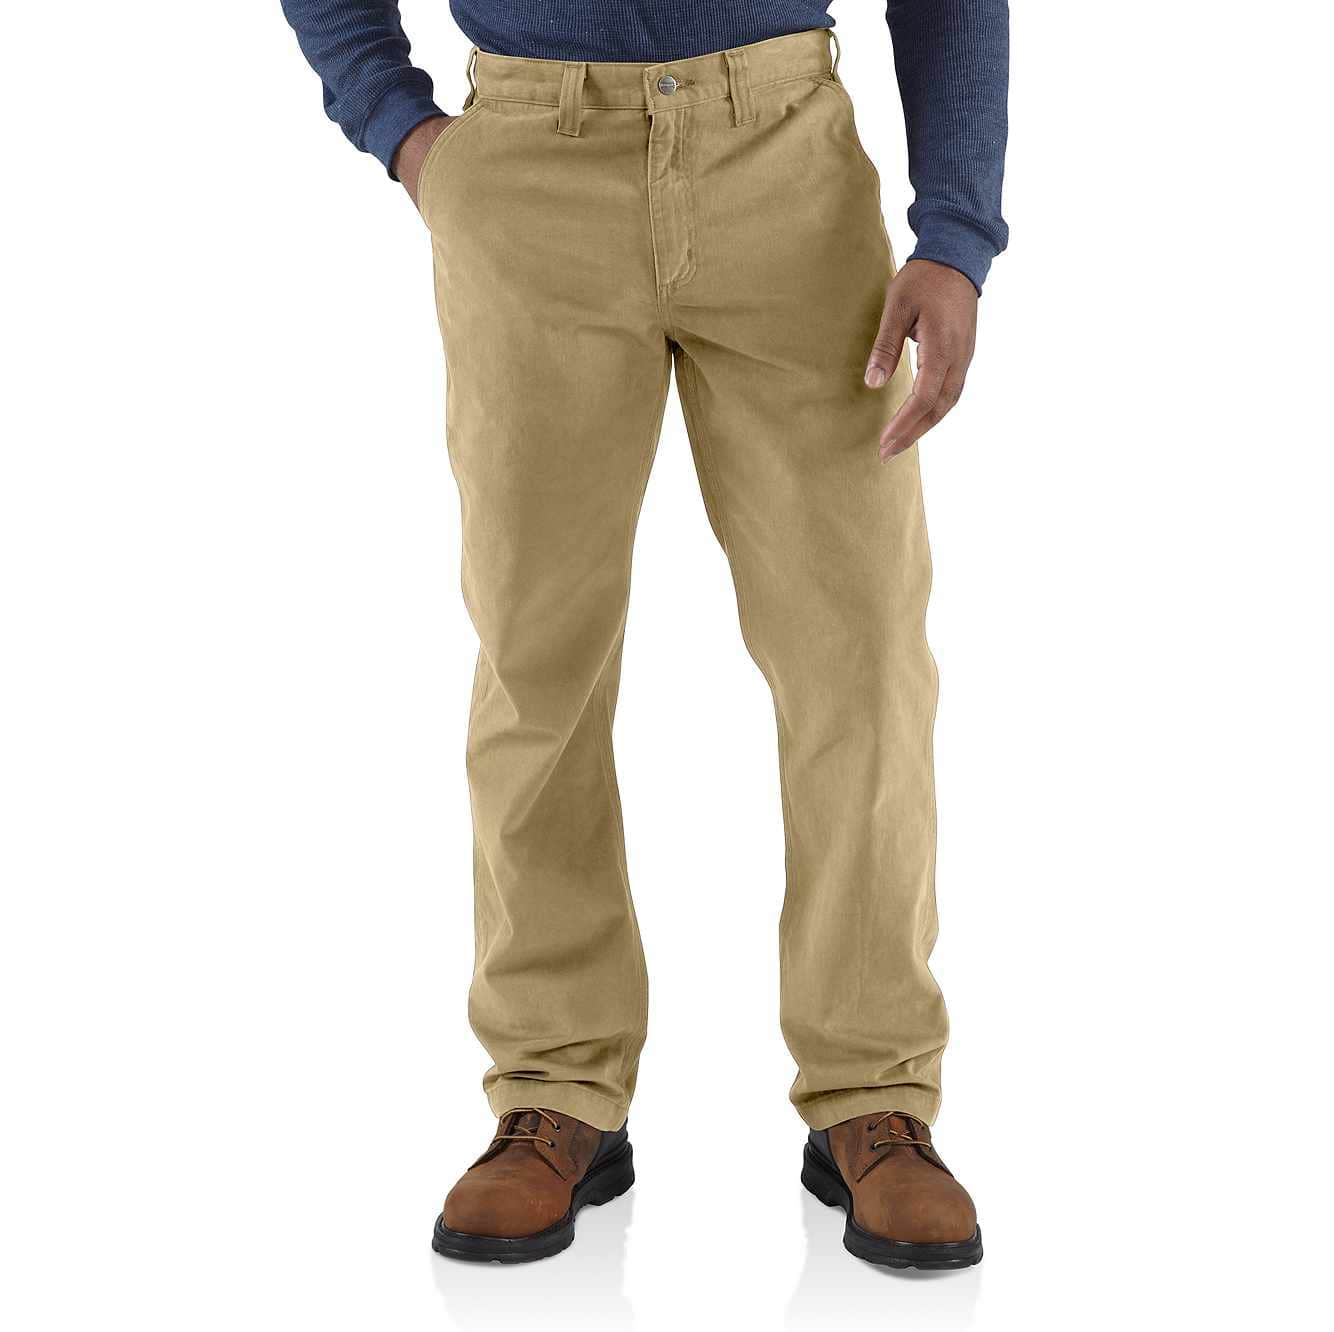 Picture of Rugged Work Khaki Pant in Field Khaki